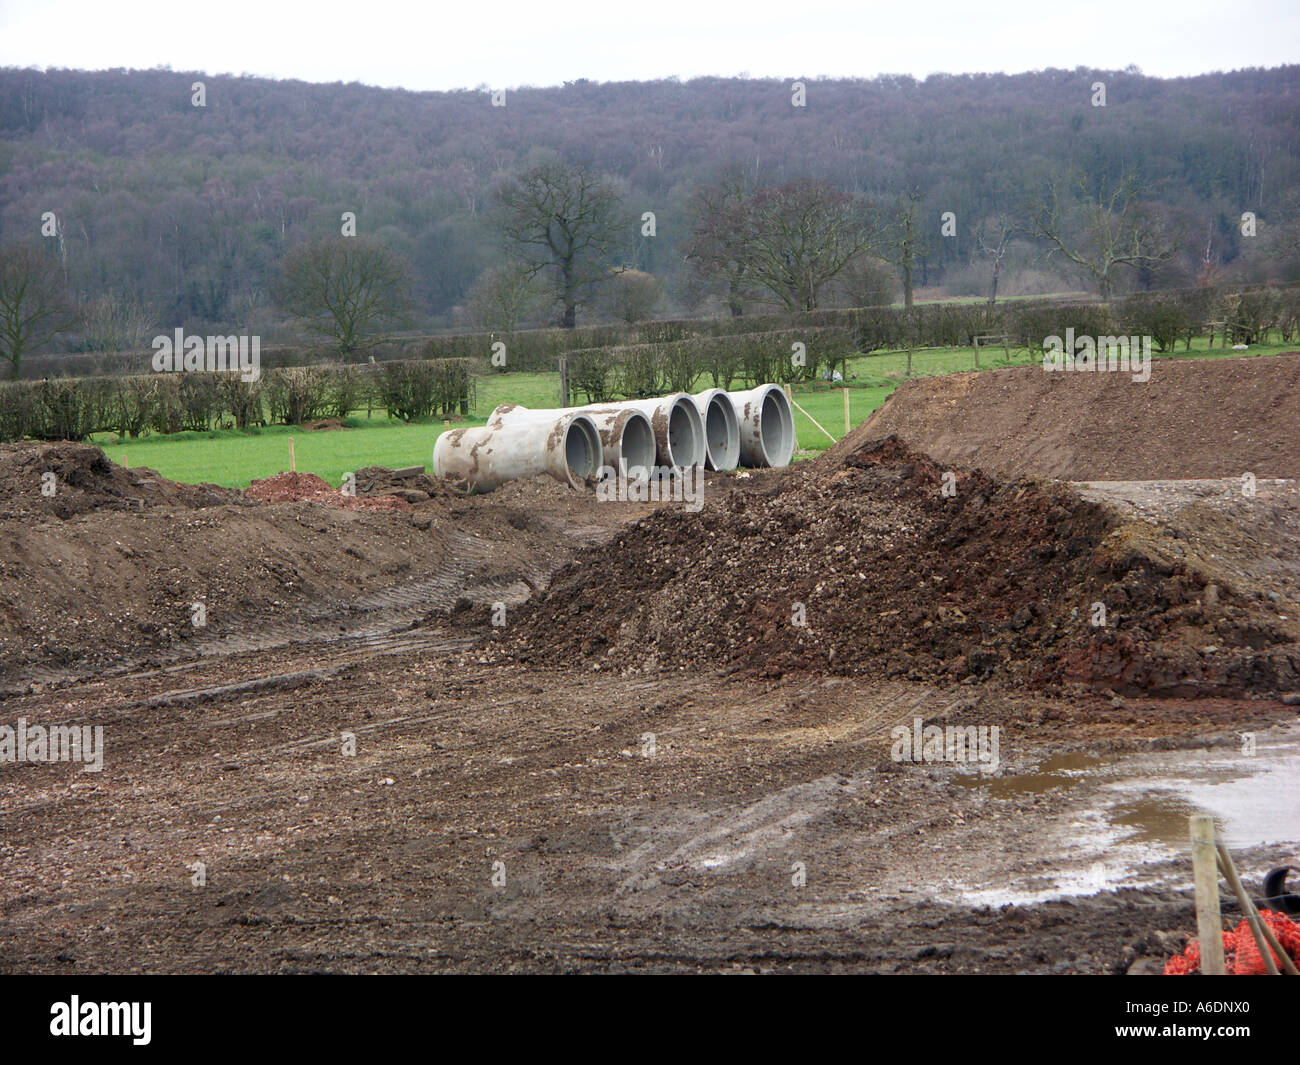 Large pre-cast concrete sewerage or drainage pipes on a green field construction or building site. & Large pre-cast concrete sewerage or drainage pipes on a green field ...